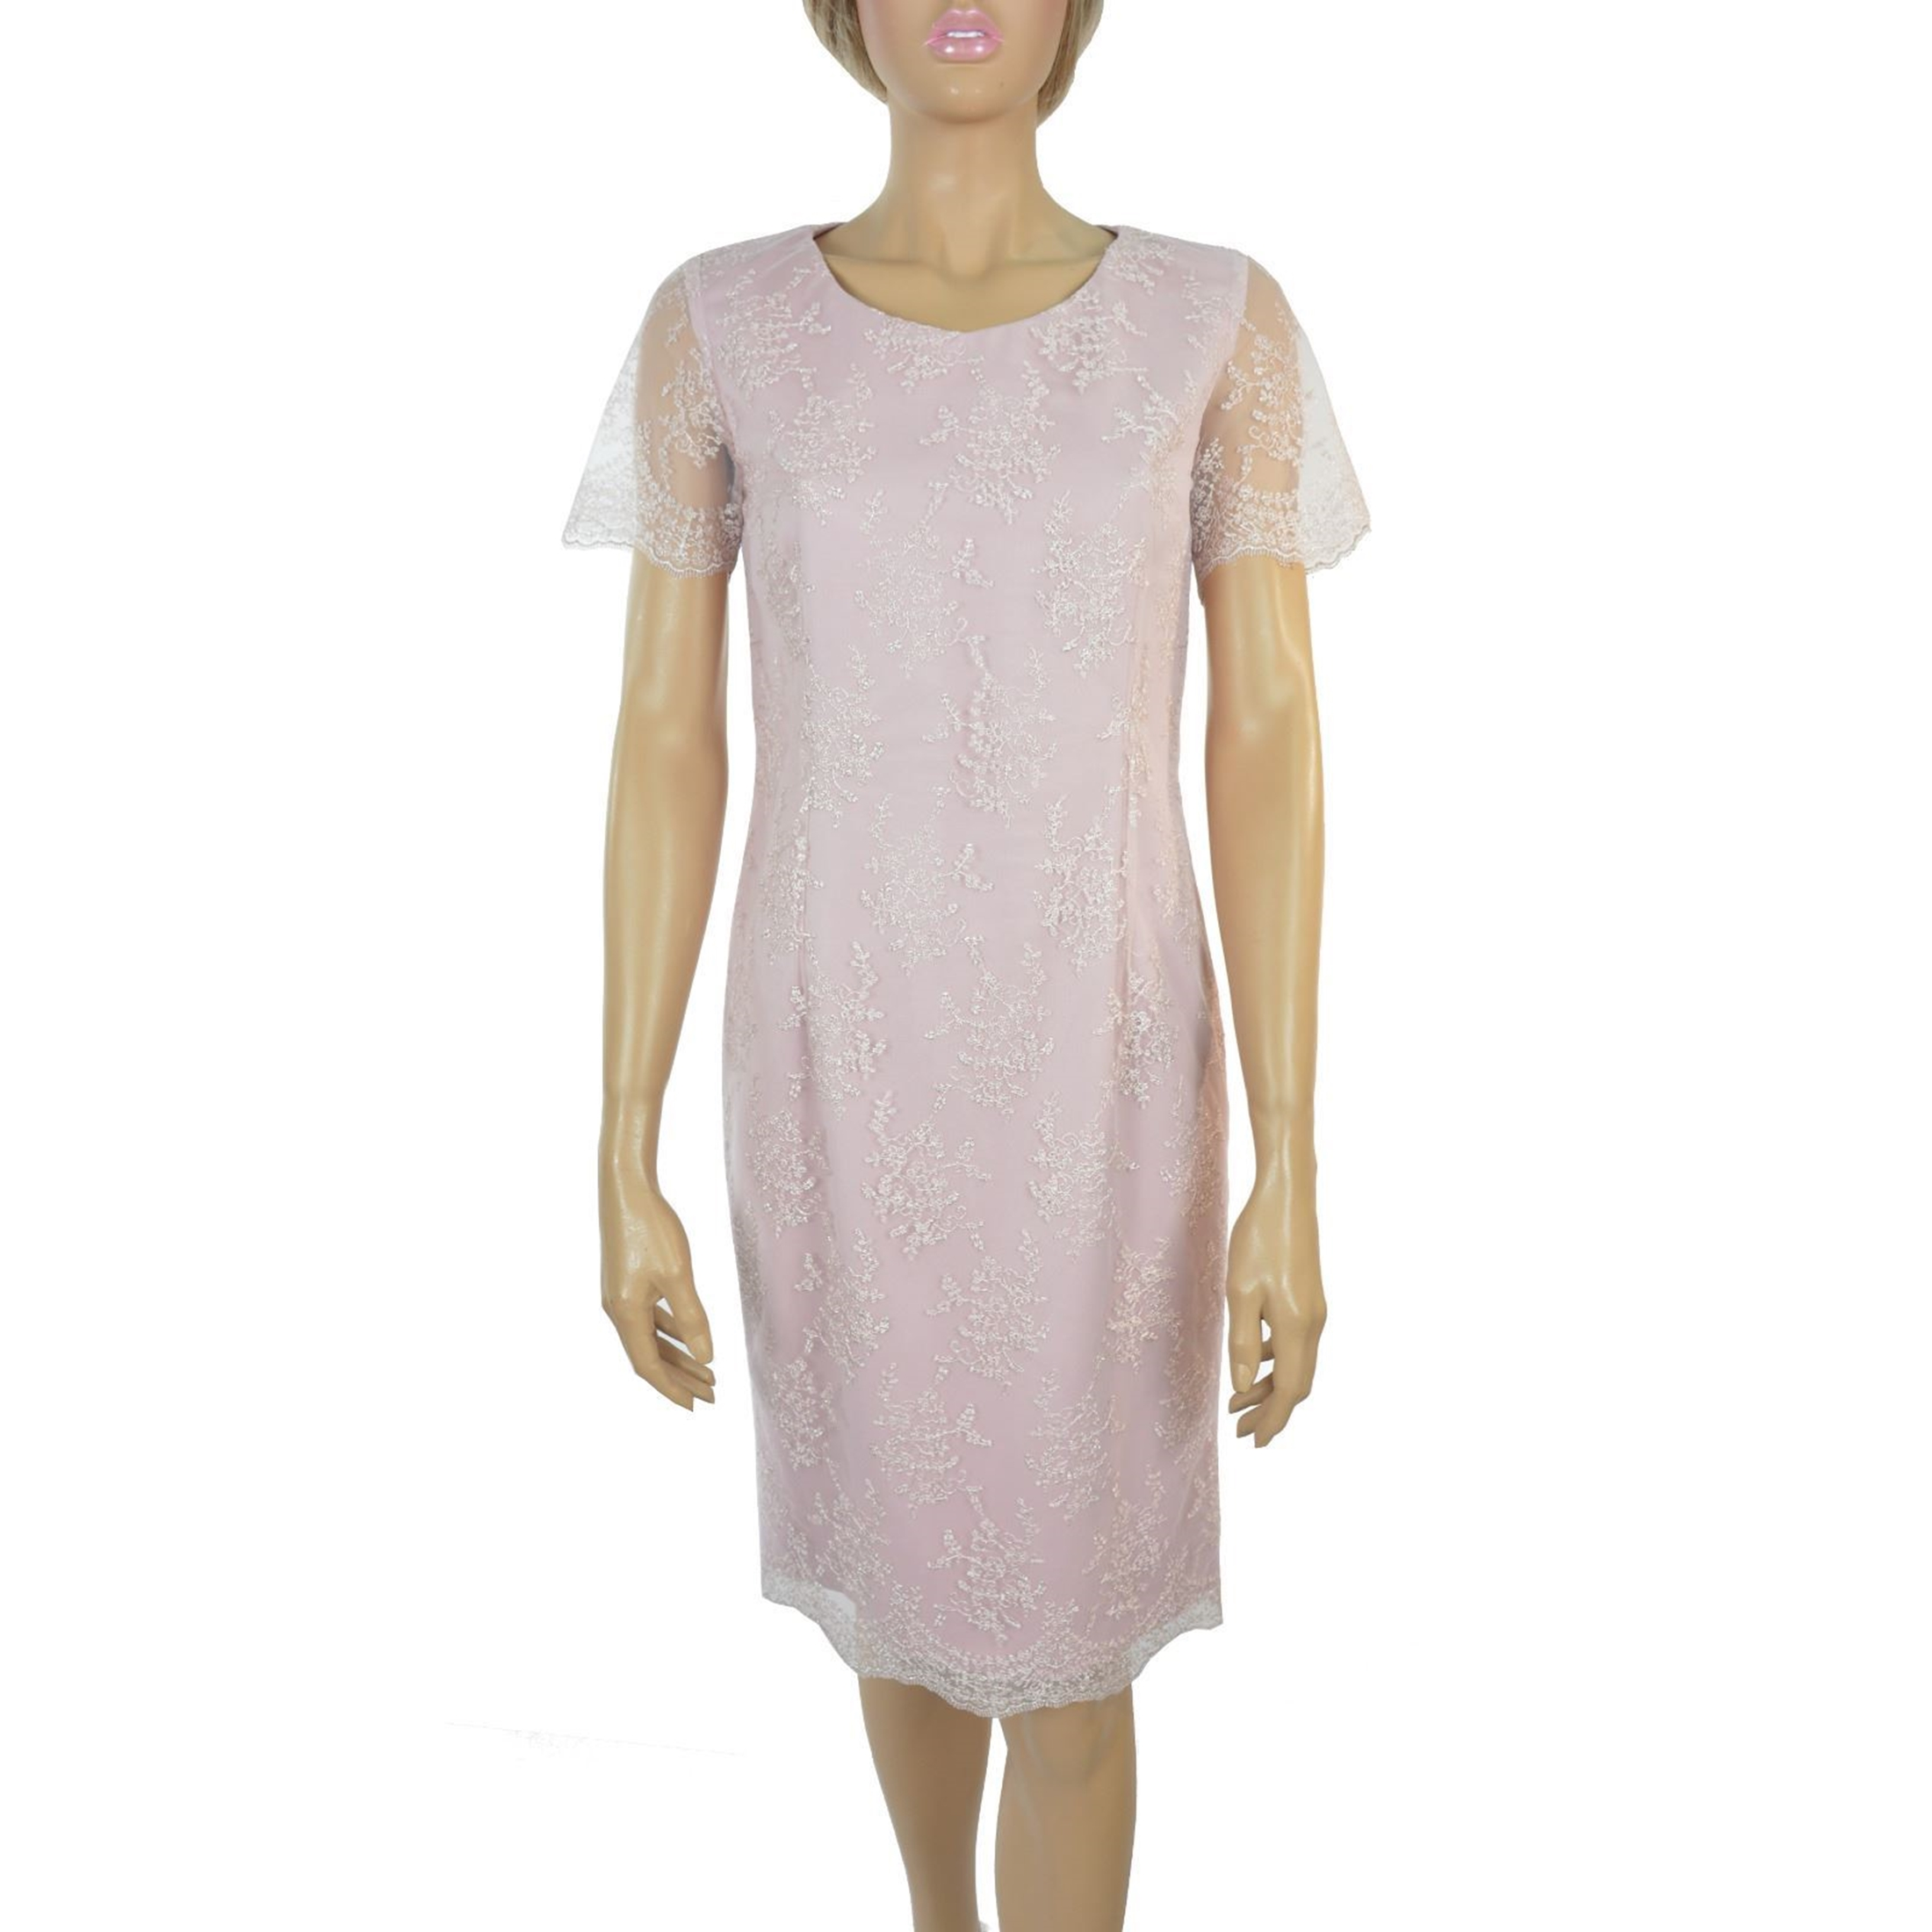 Picture of Women's Dress - LM451395 PINK